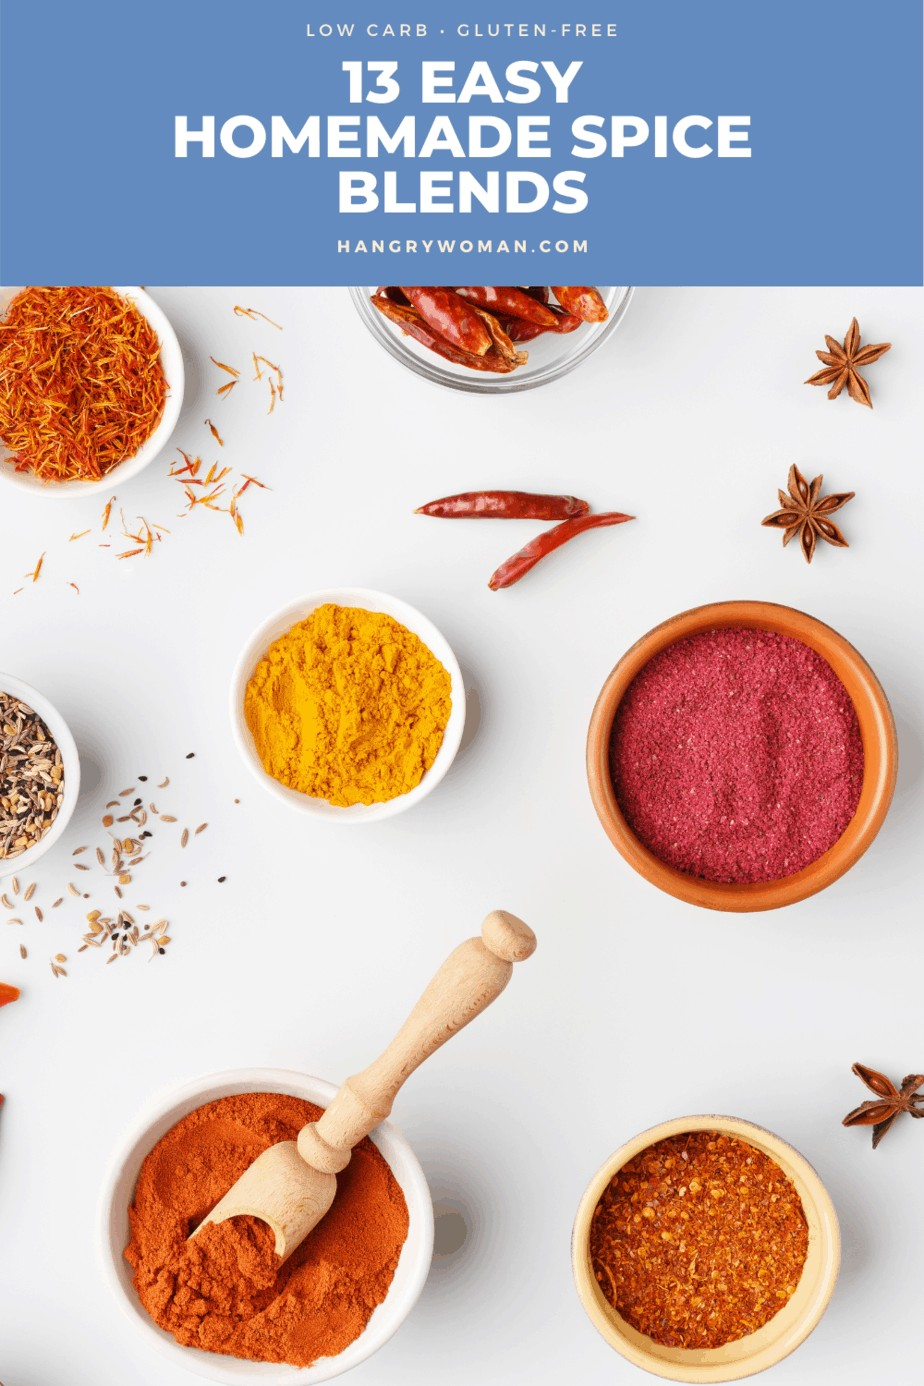 PINTEREST PIN WITH FLAT LAID SPICE BLENDS